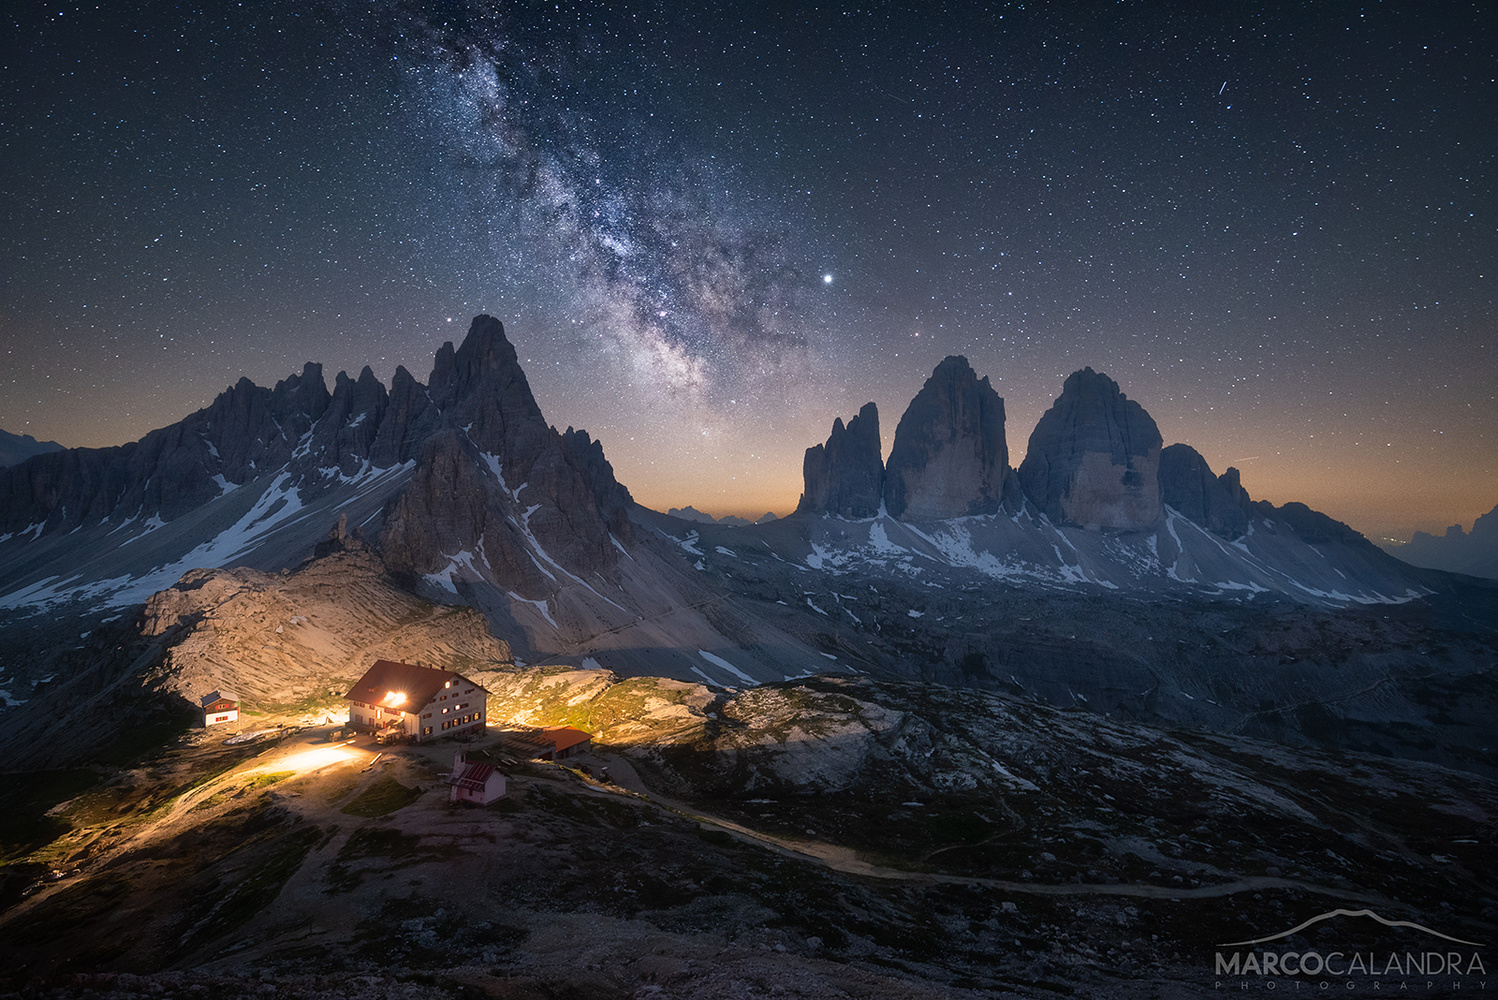 The perfect night by Marco Calandra